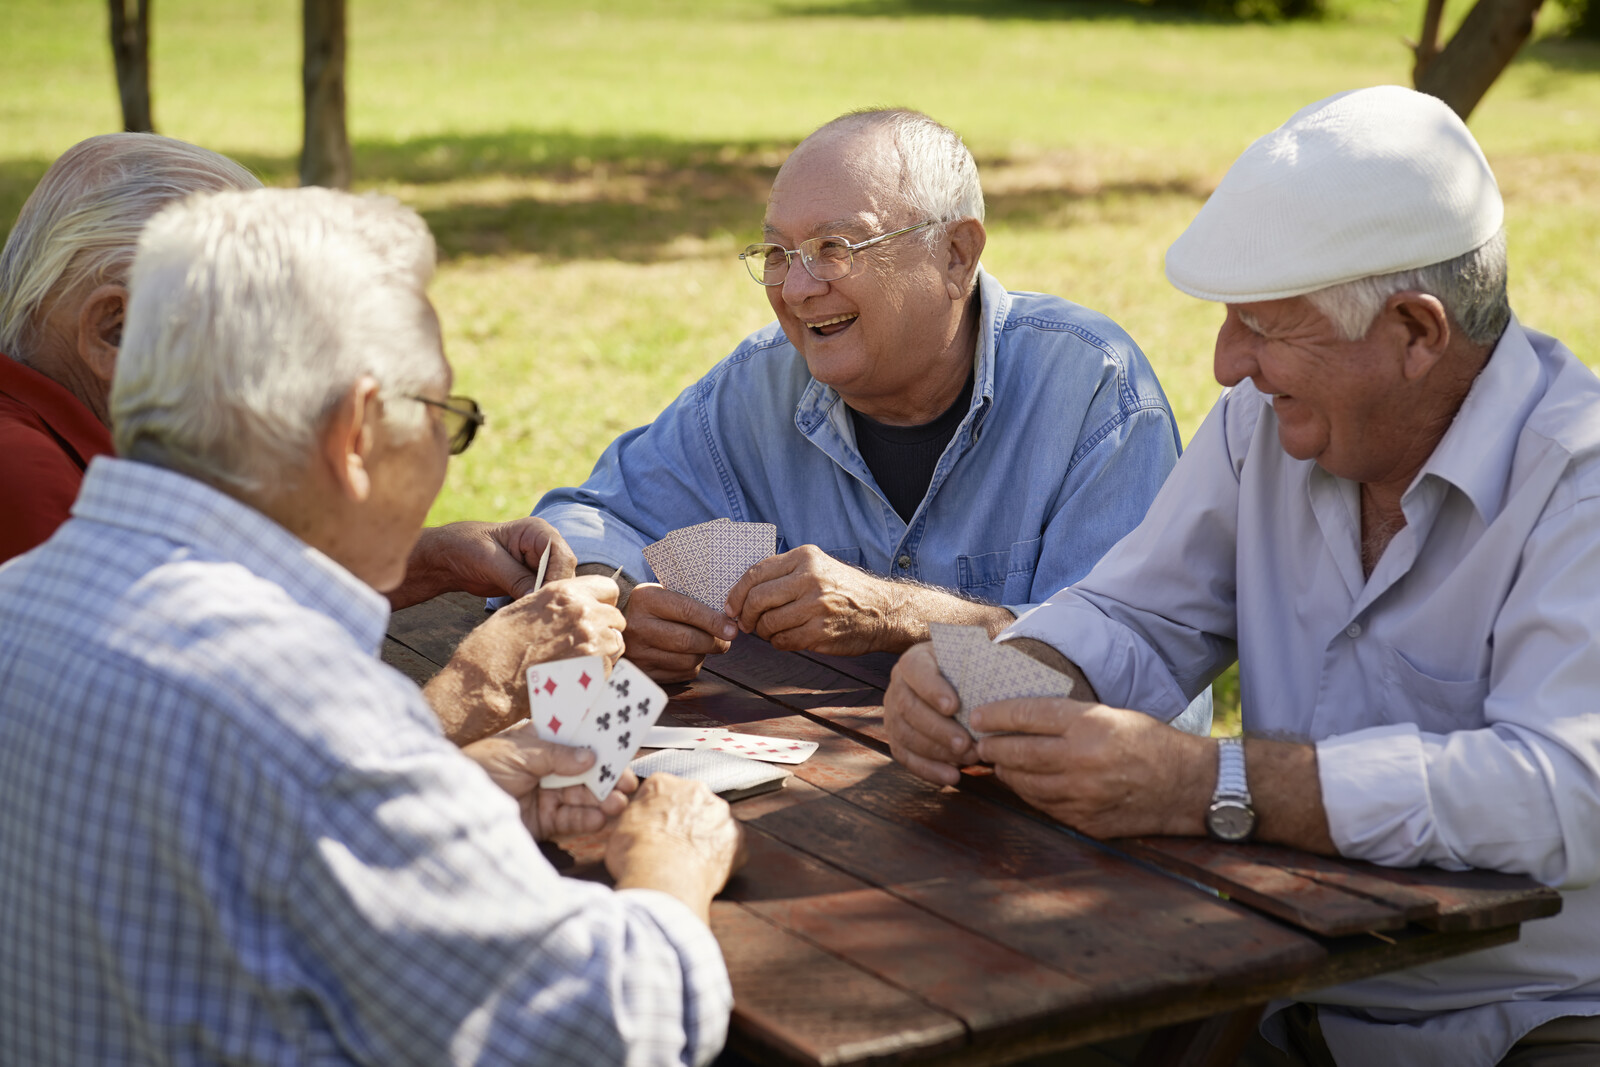 Four senior men sitting playing cards outside at a picnic table on a sunny day smiling and laughing